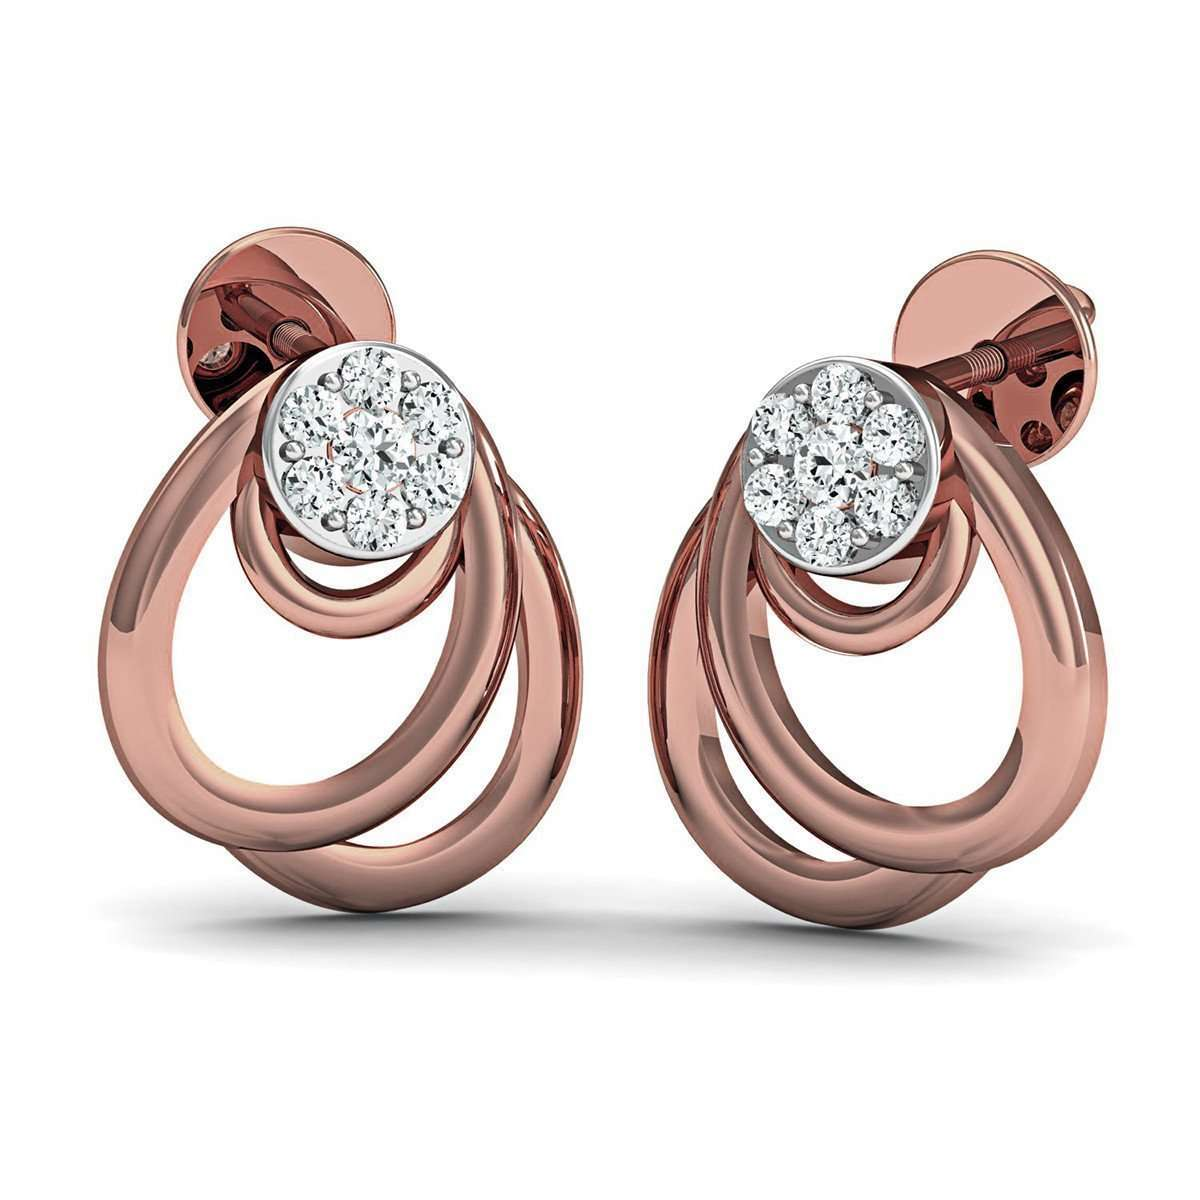 10kt Rose Gold Earrings with 14 Premium Quality Diamonds Inspired by Nature-Diamoire Jewels-JewelStreet US